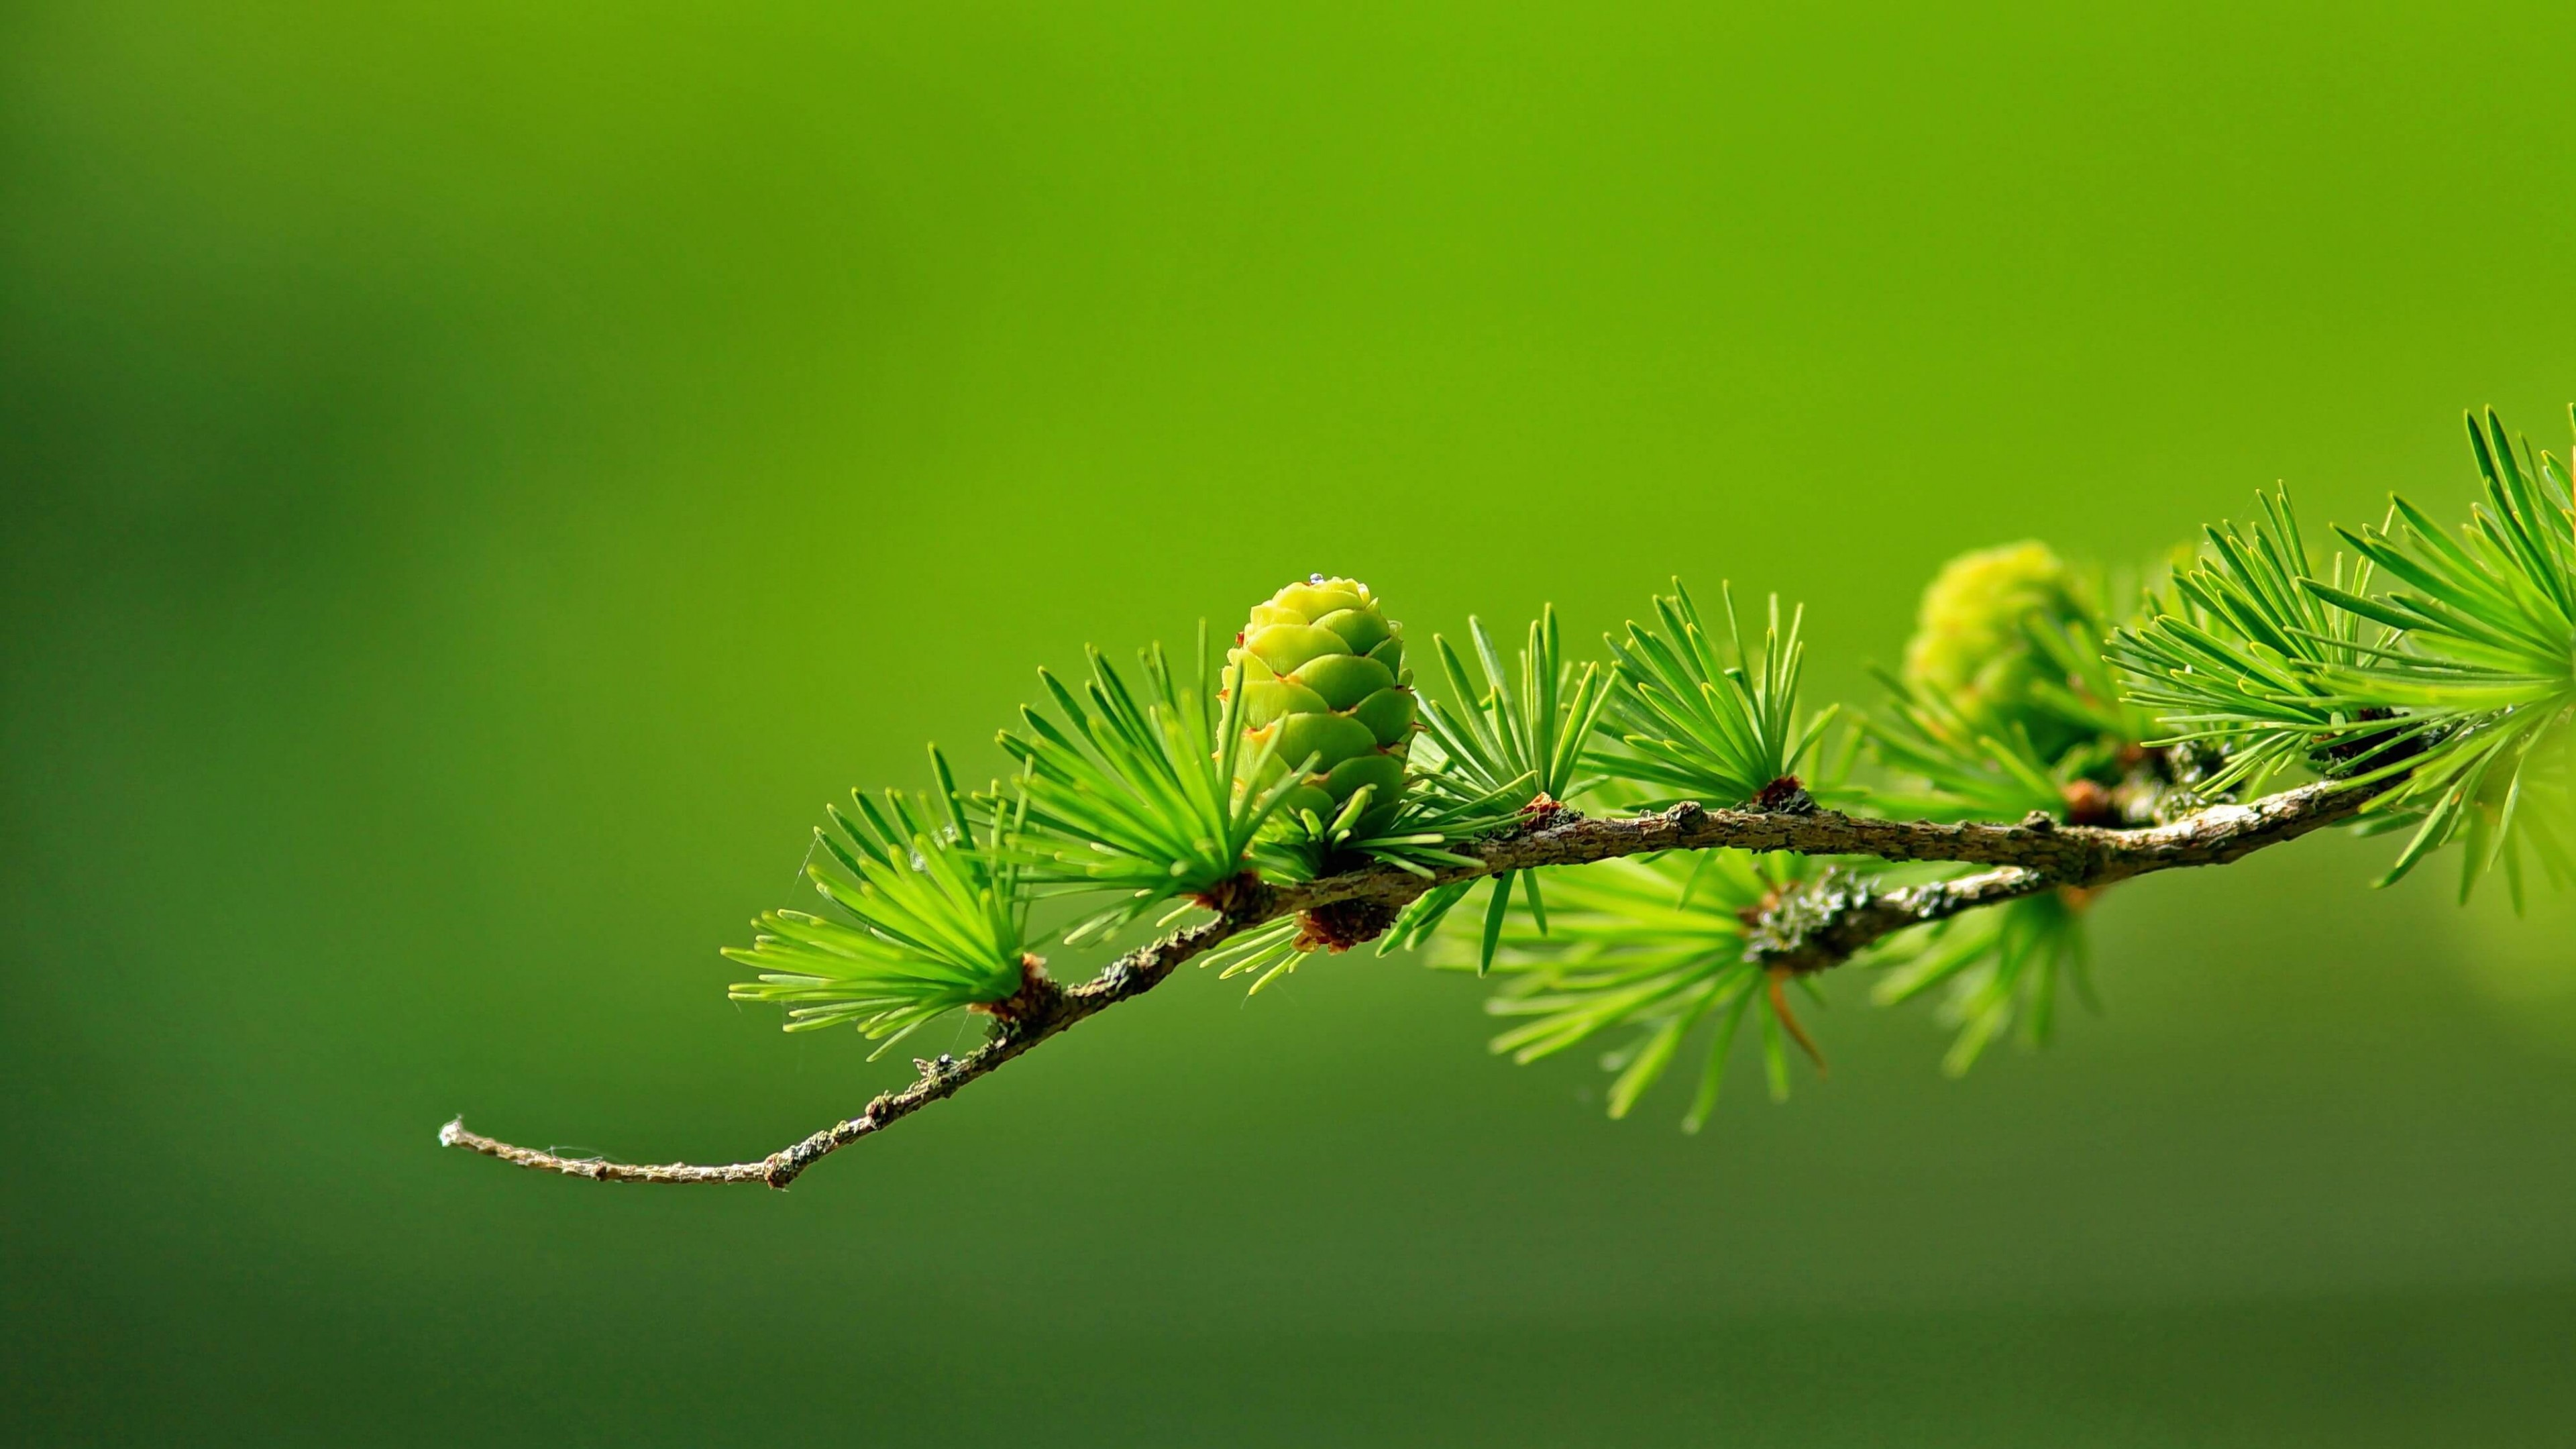 Pine Wallpapers, Photos And Desktop Backgrounds Up To 8K